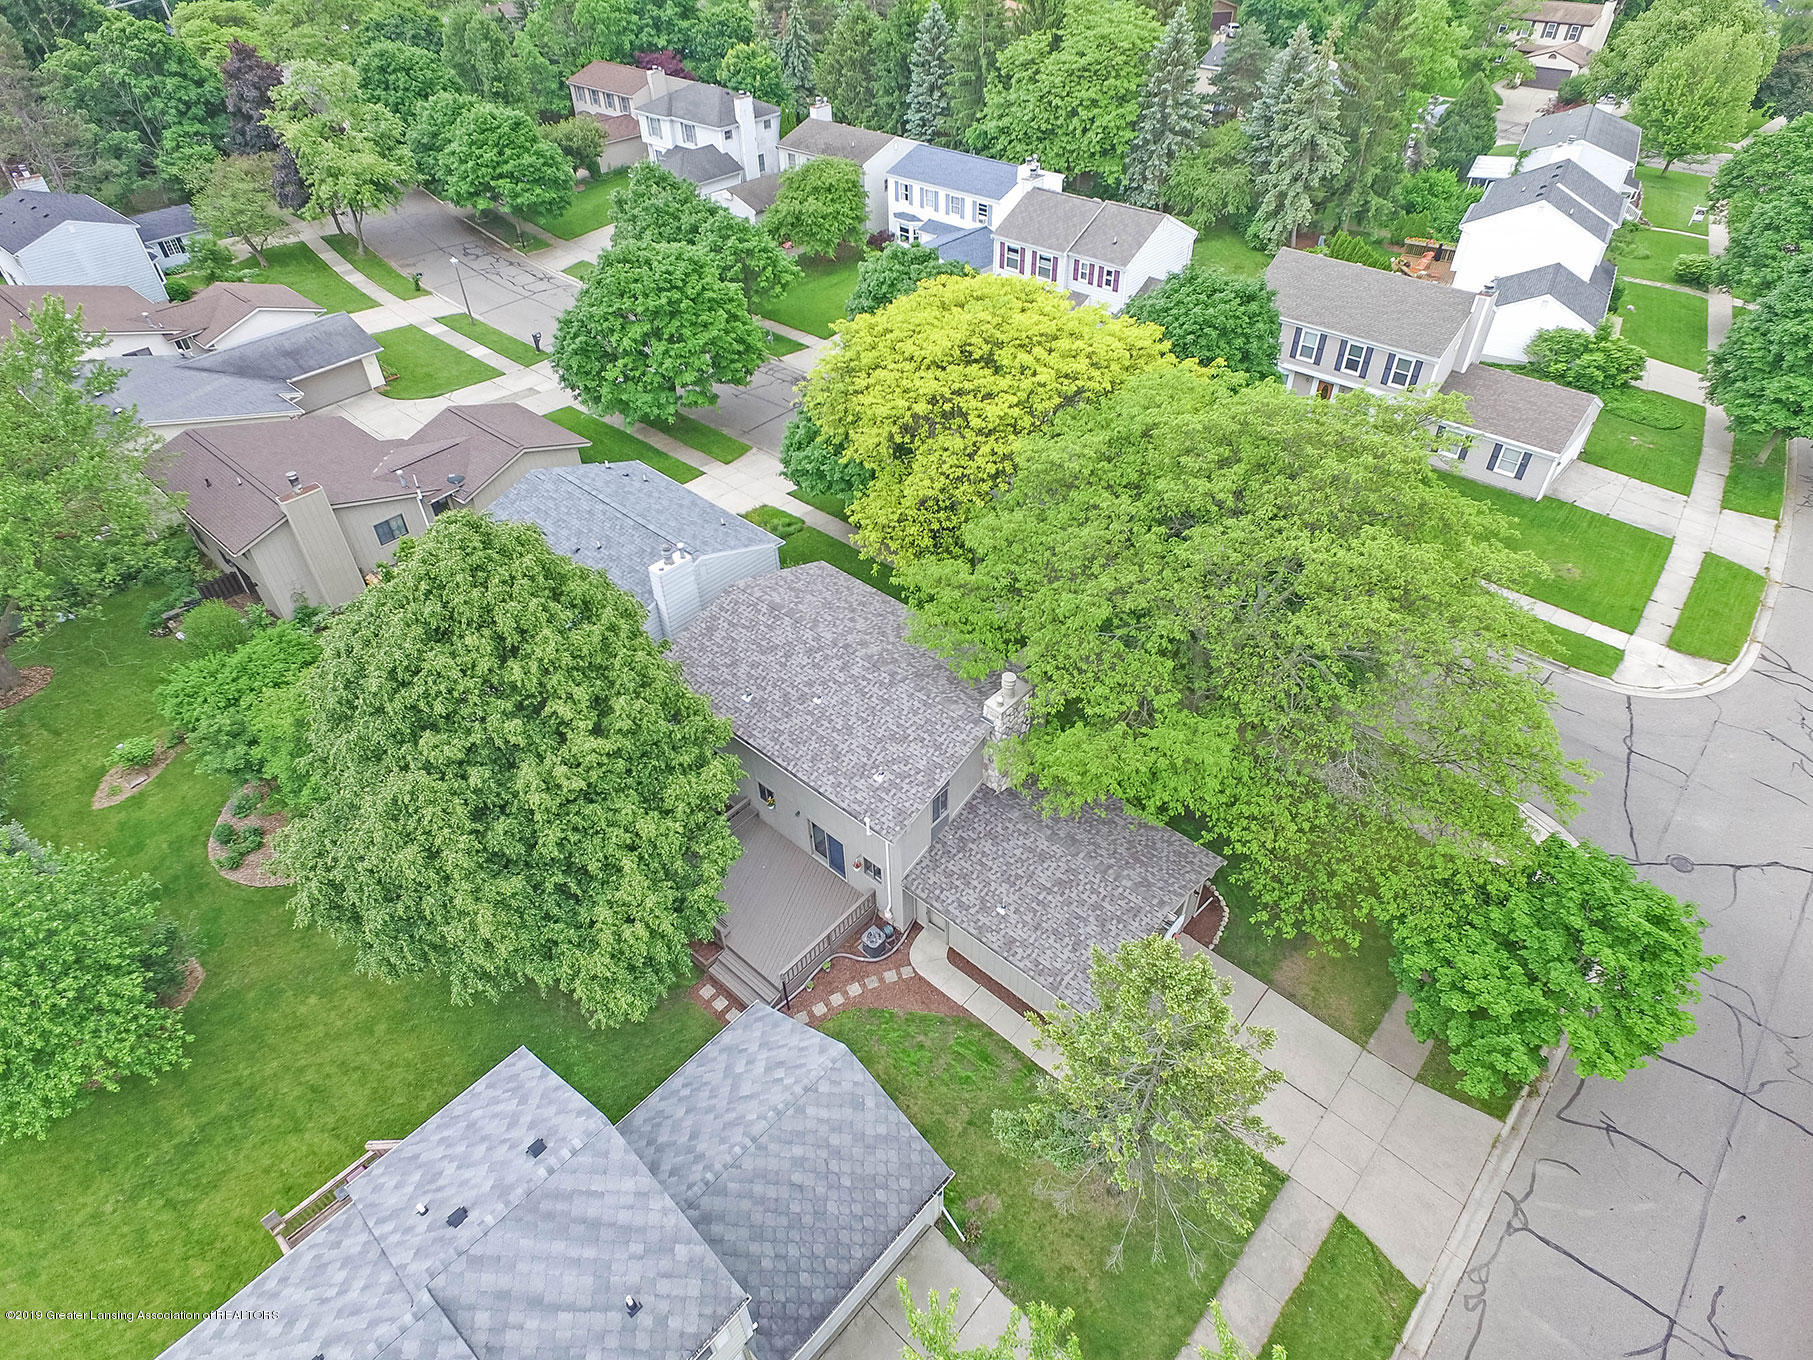 992 Touraine Ave - DJI_0010 - 44